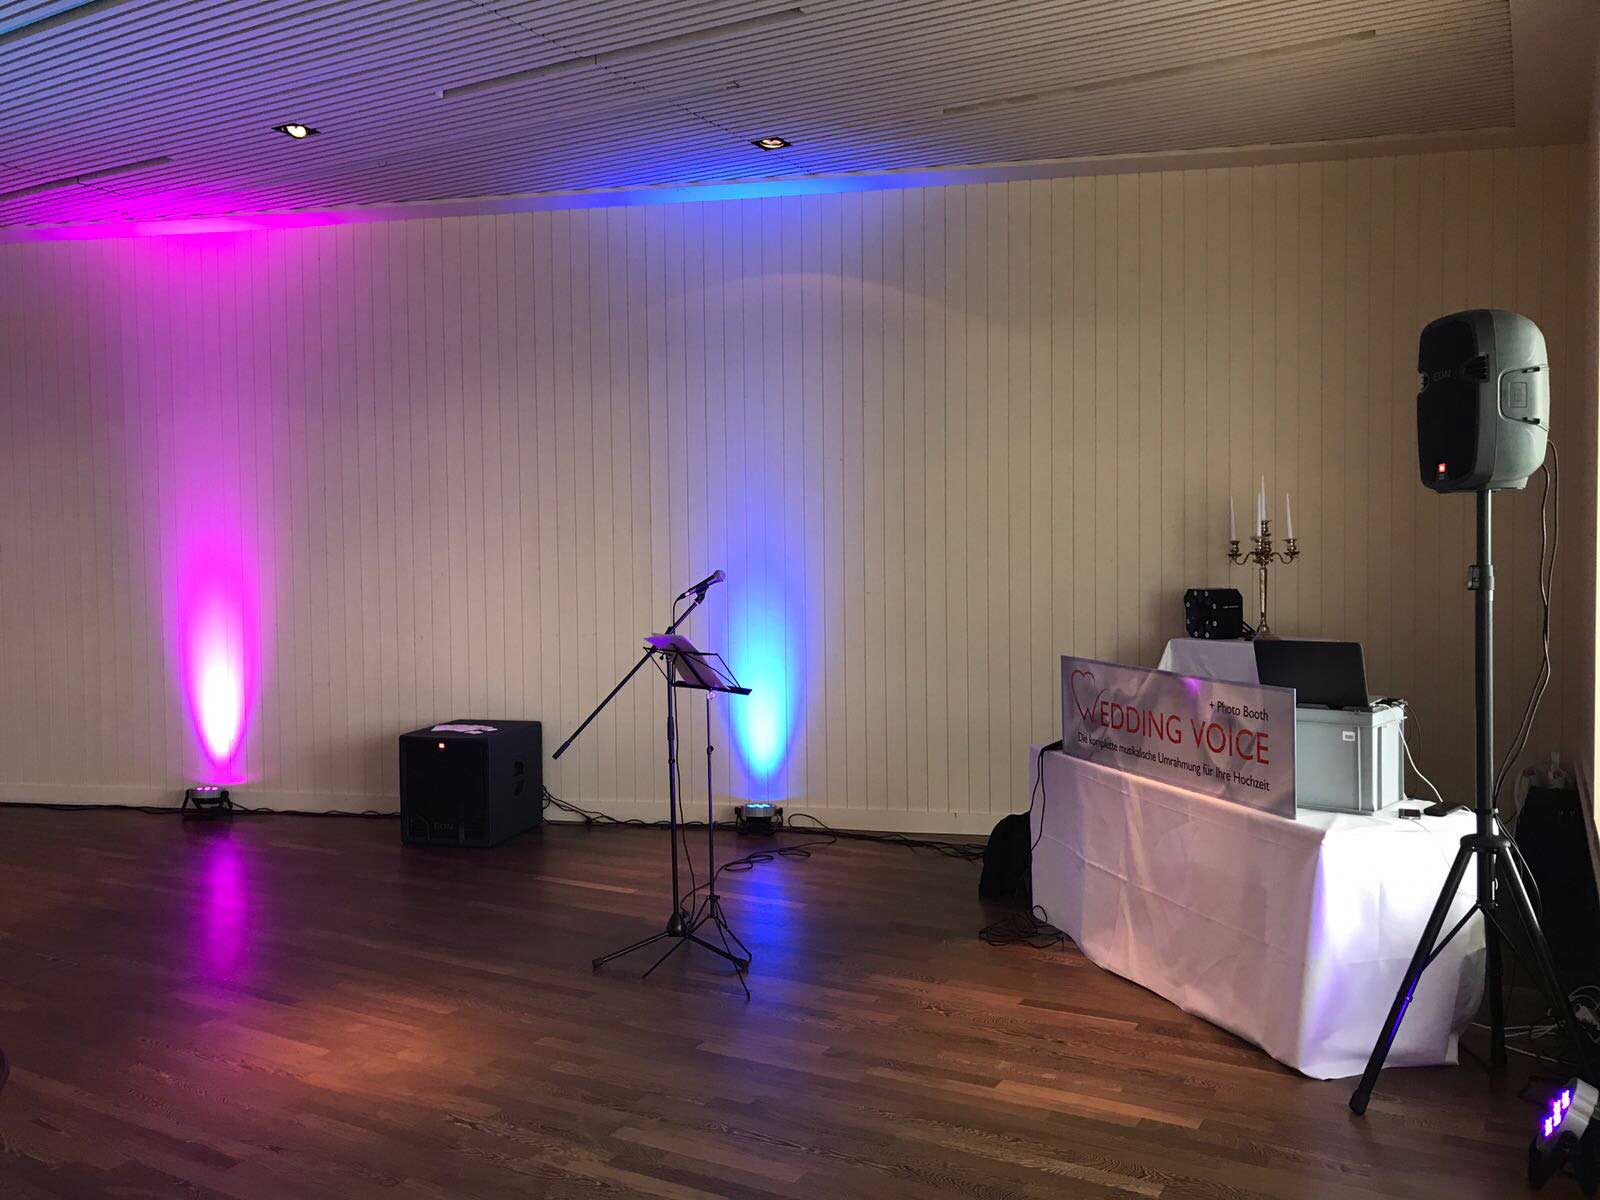 DJ Wedding Voice